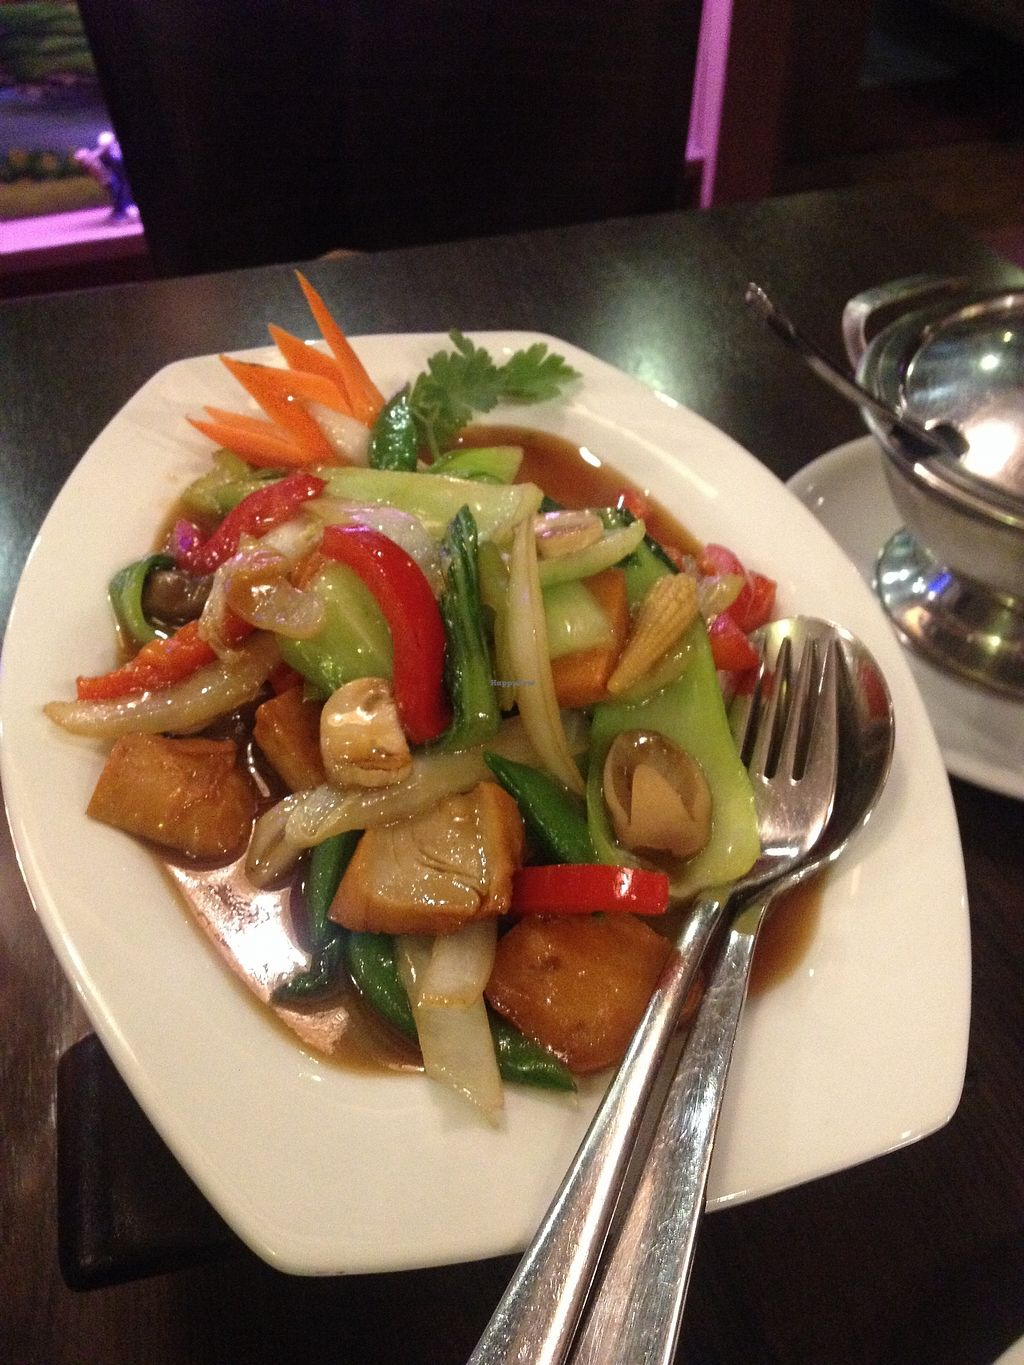 "Photo of Thai Food  by <a href=""/members/profile/o0Carolyn0o"">o0Carolyn0o</a> <br/>Mock meat with straw mushrooms & veggies.  <br/> March 16, 2018  - <a href='/contact/abuse/image/40362/371443'>Report</a>"